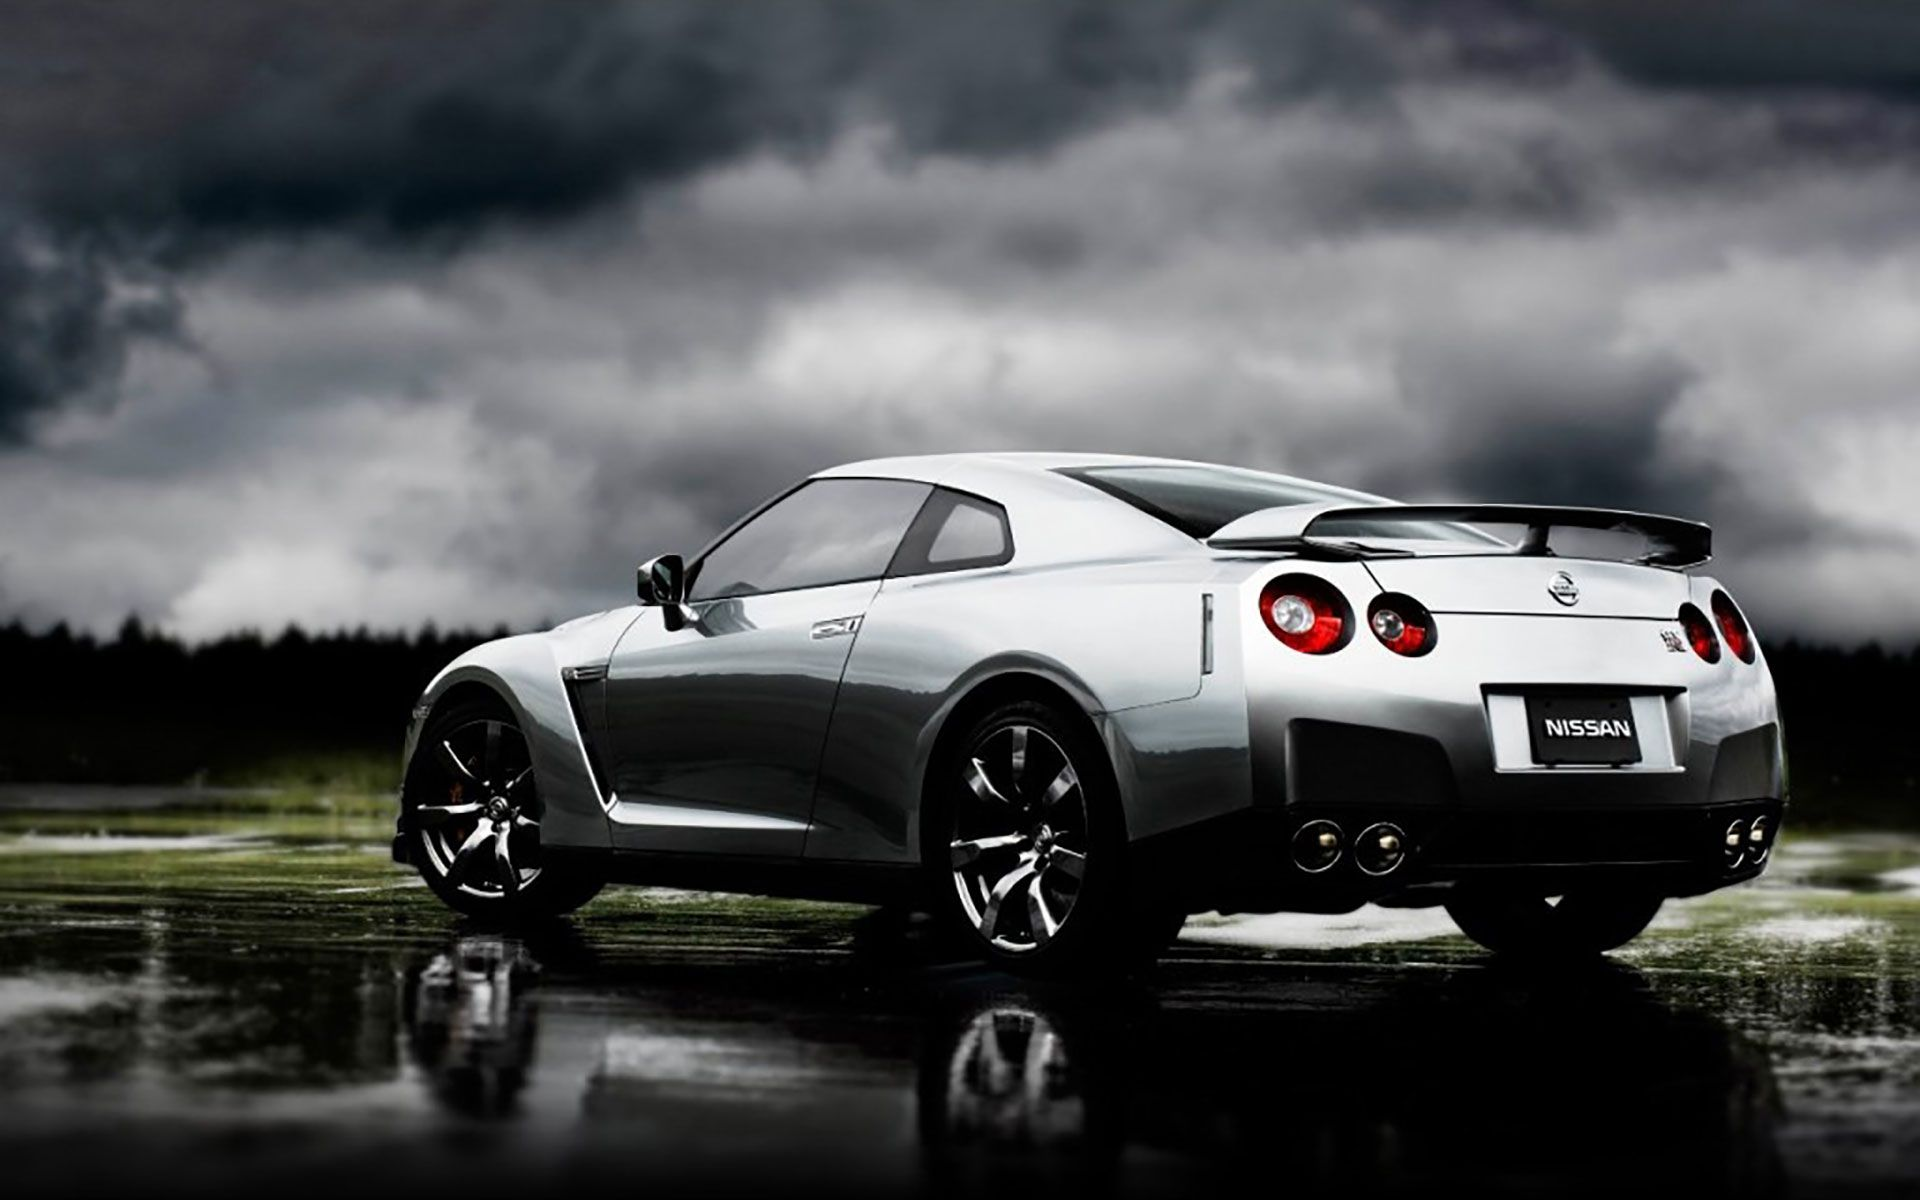 Cool Car Backgrounds Wallpapers Wallpaper HD Wallpapers - Cool 3d cars wallpapers